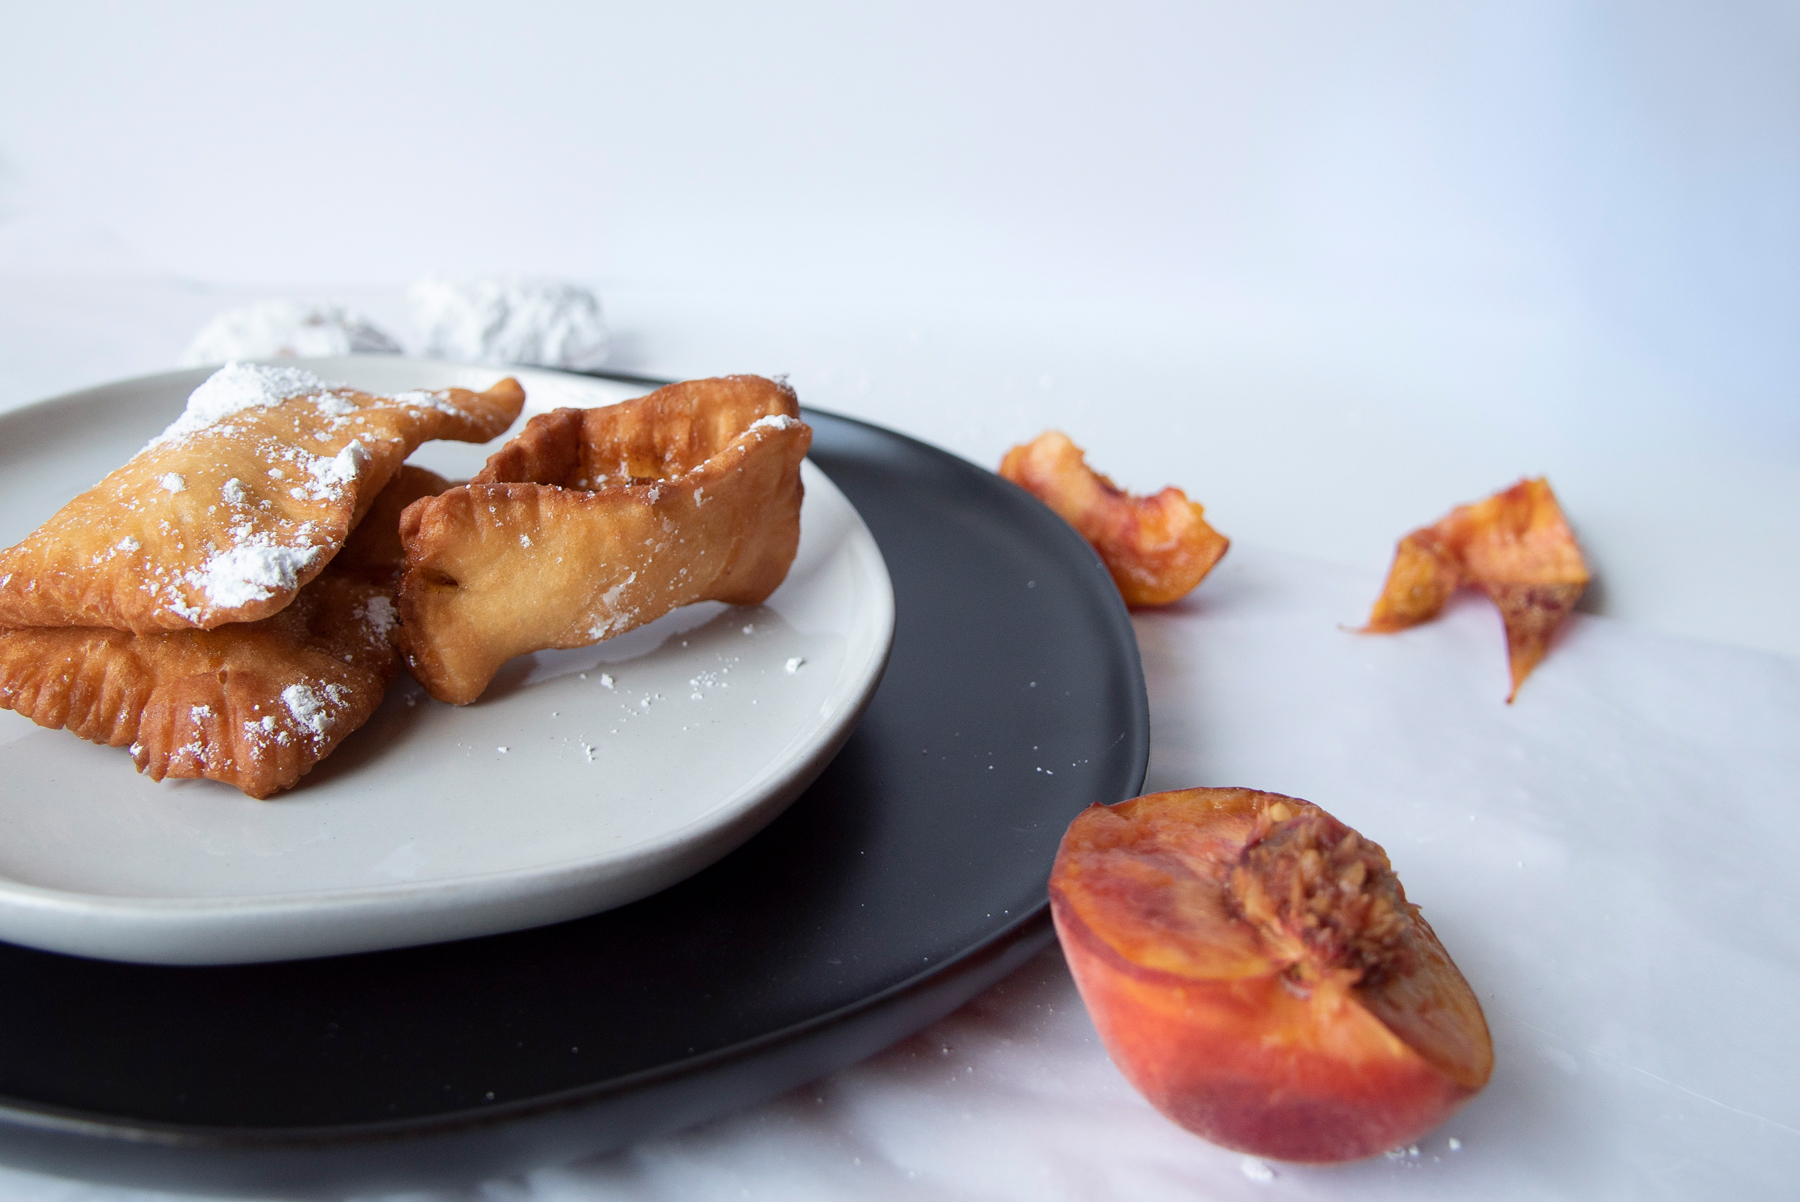 The Beignet Bar Product Photography Photographed by Hire Henri Creative in Chicago Illinois